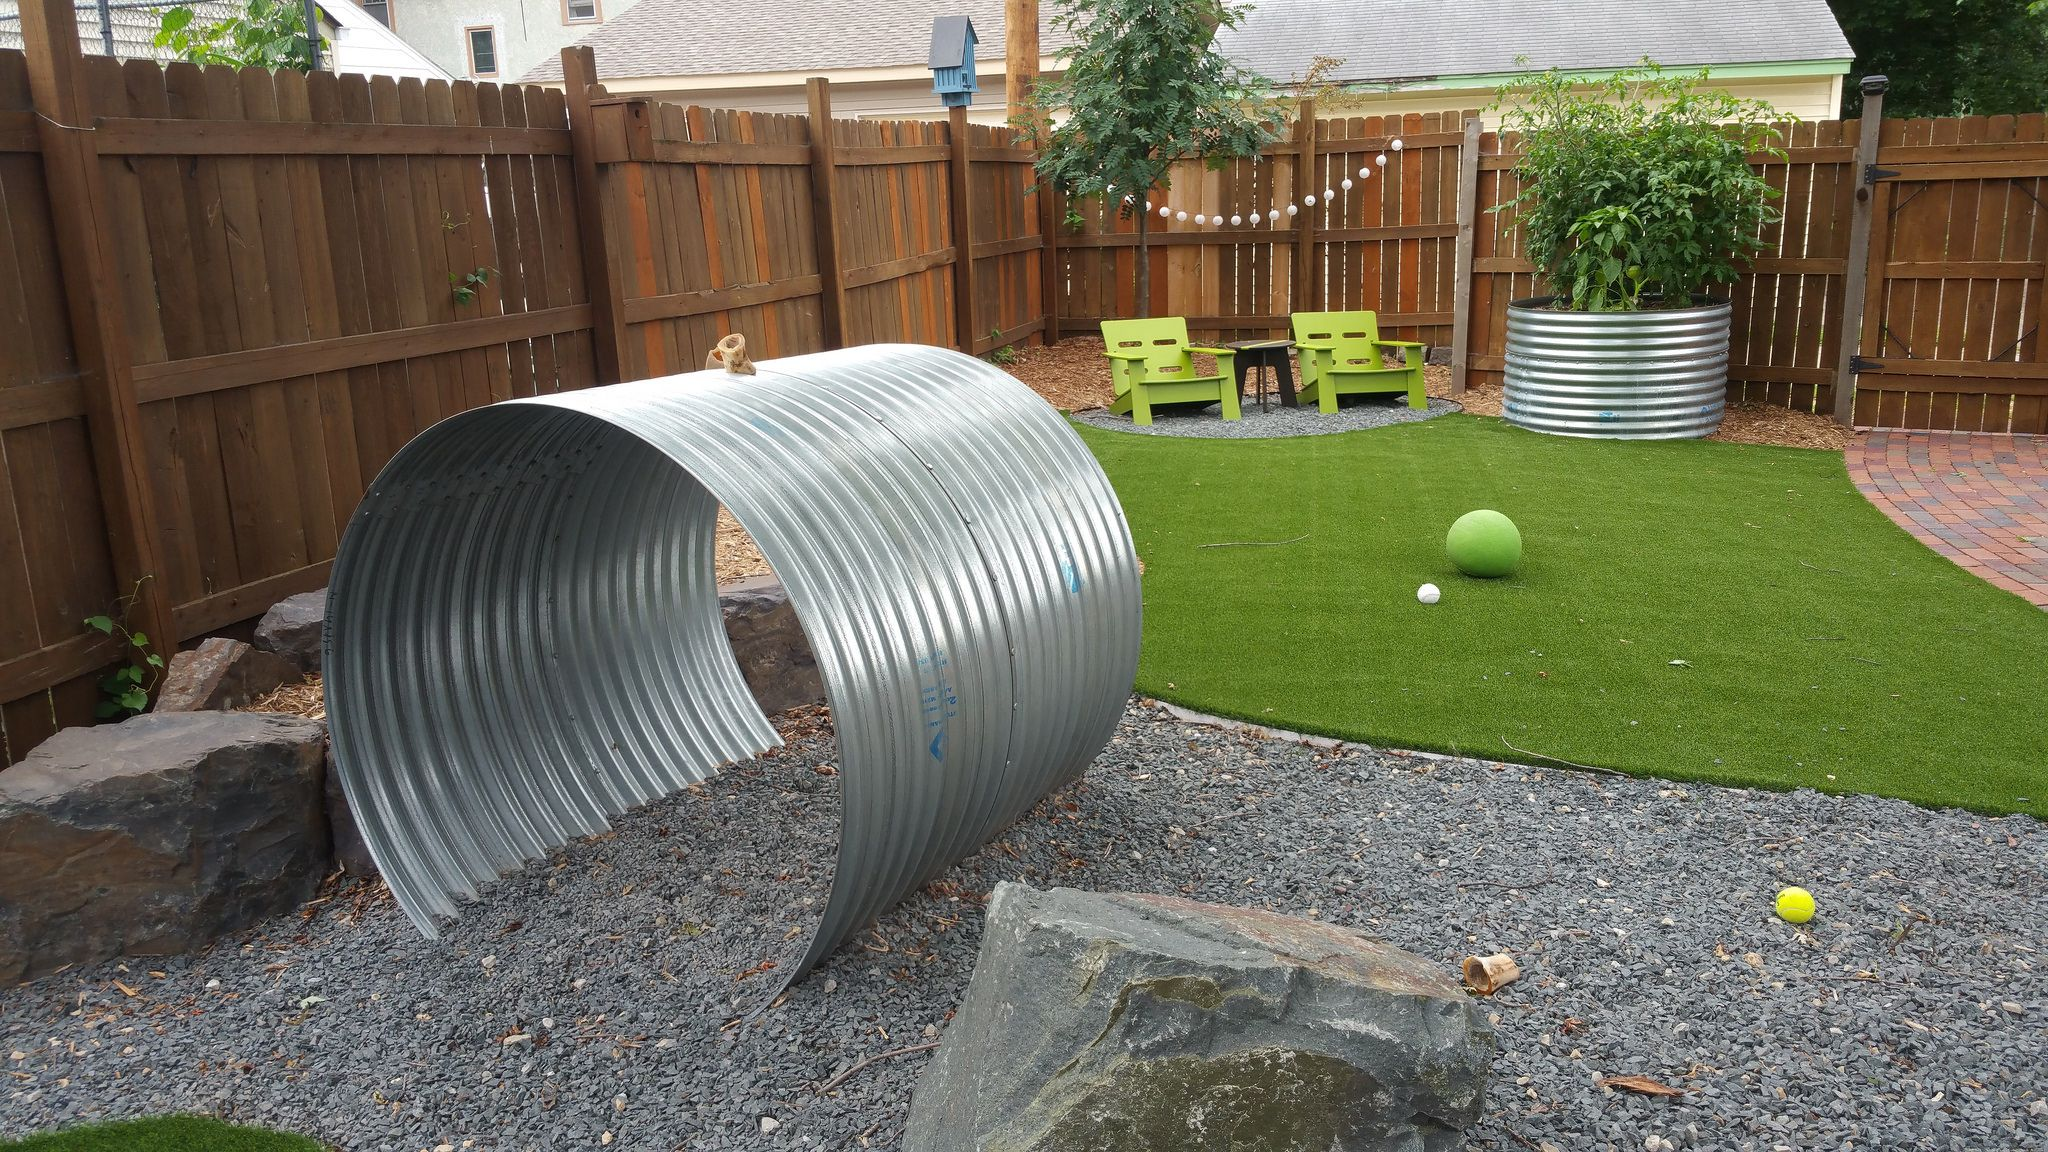 This is a dogscape play area with artificial grass and culverts